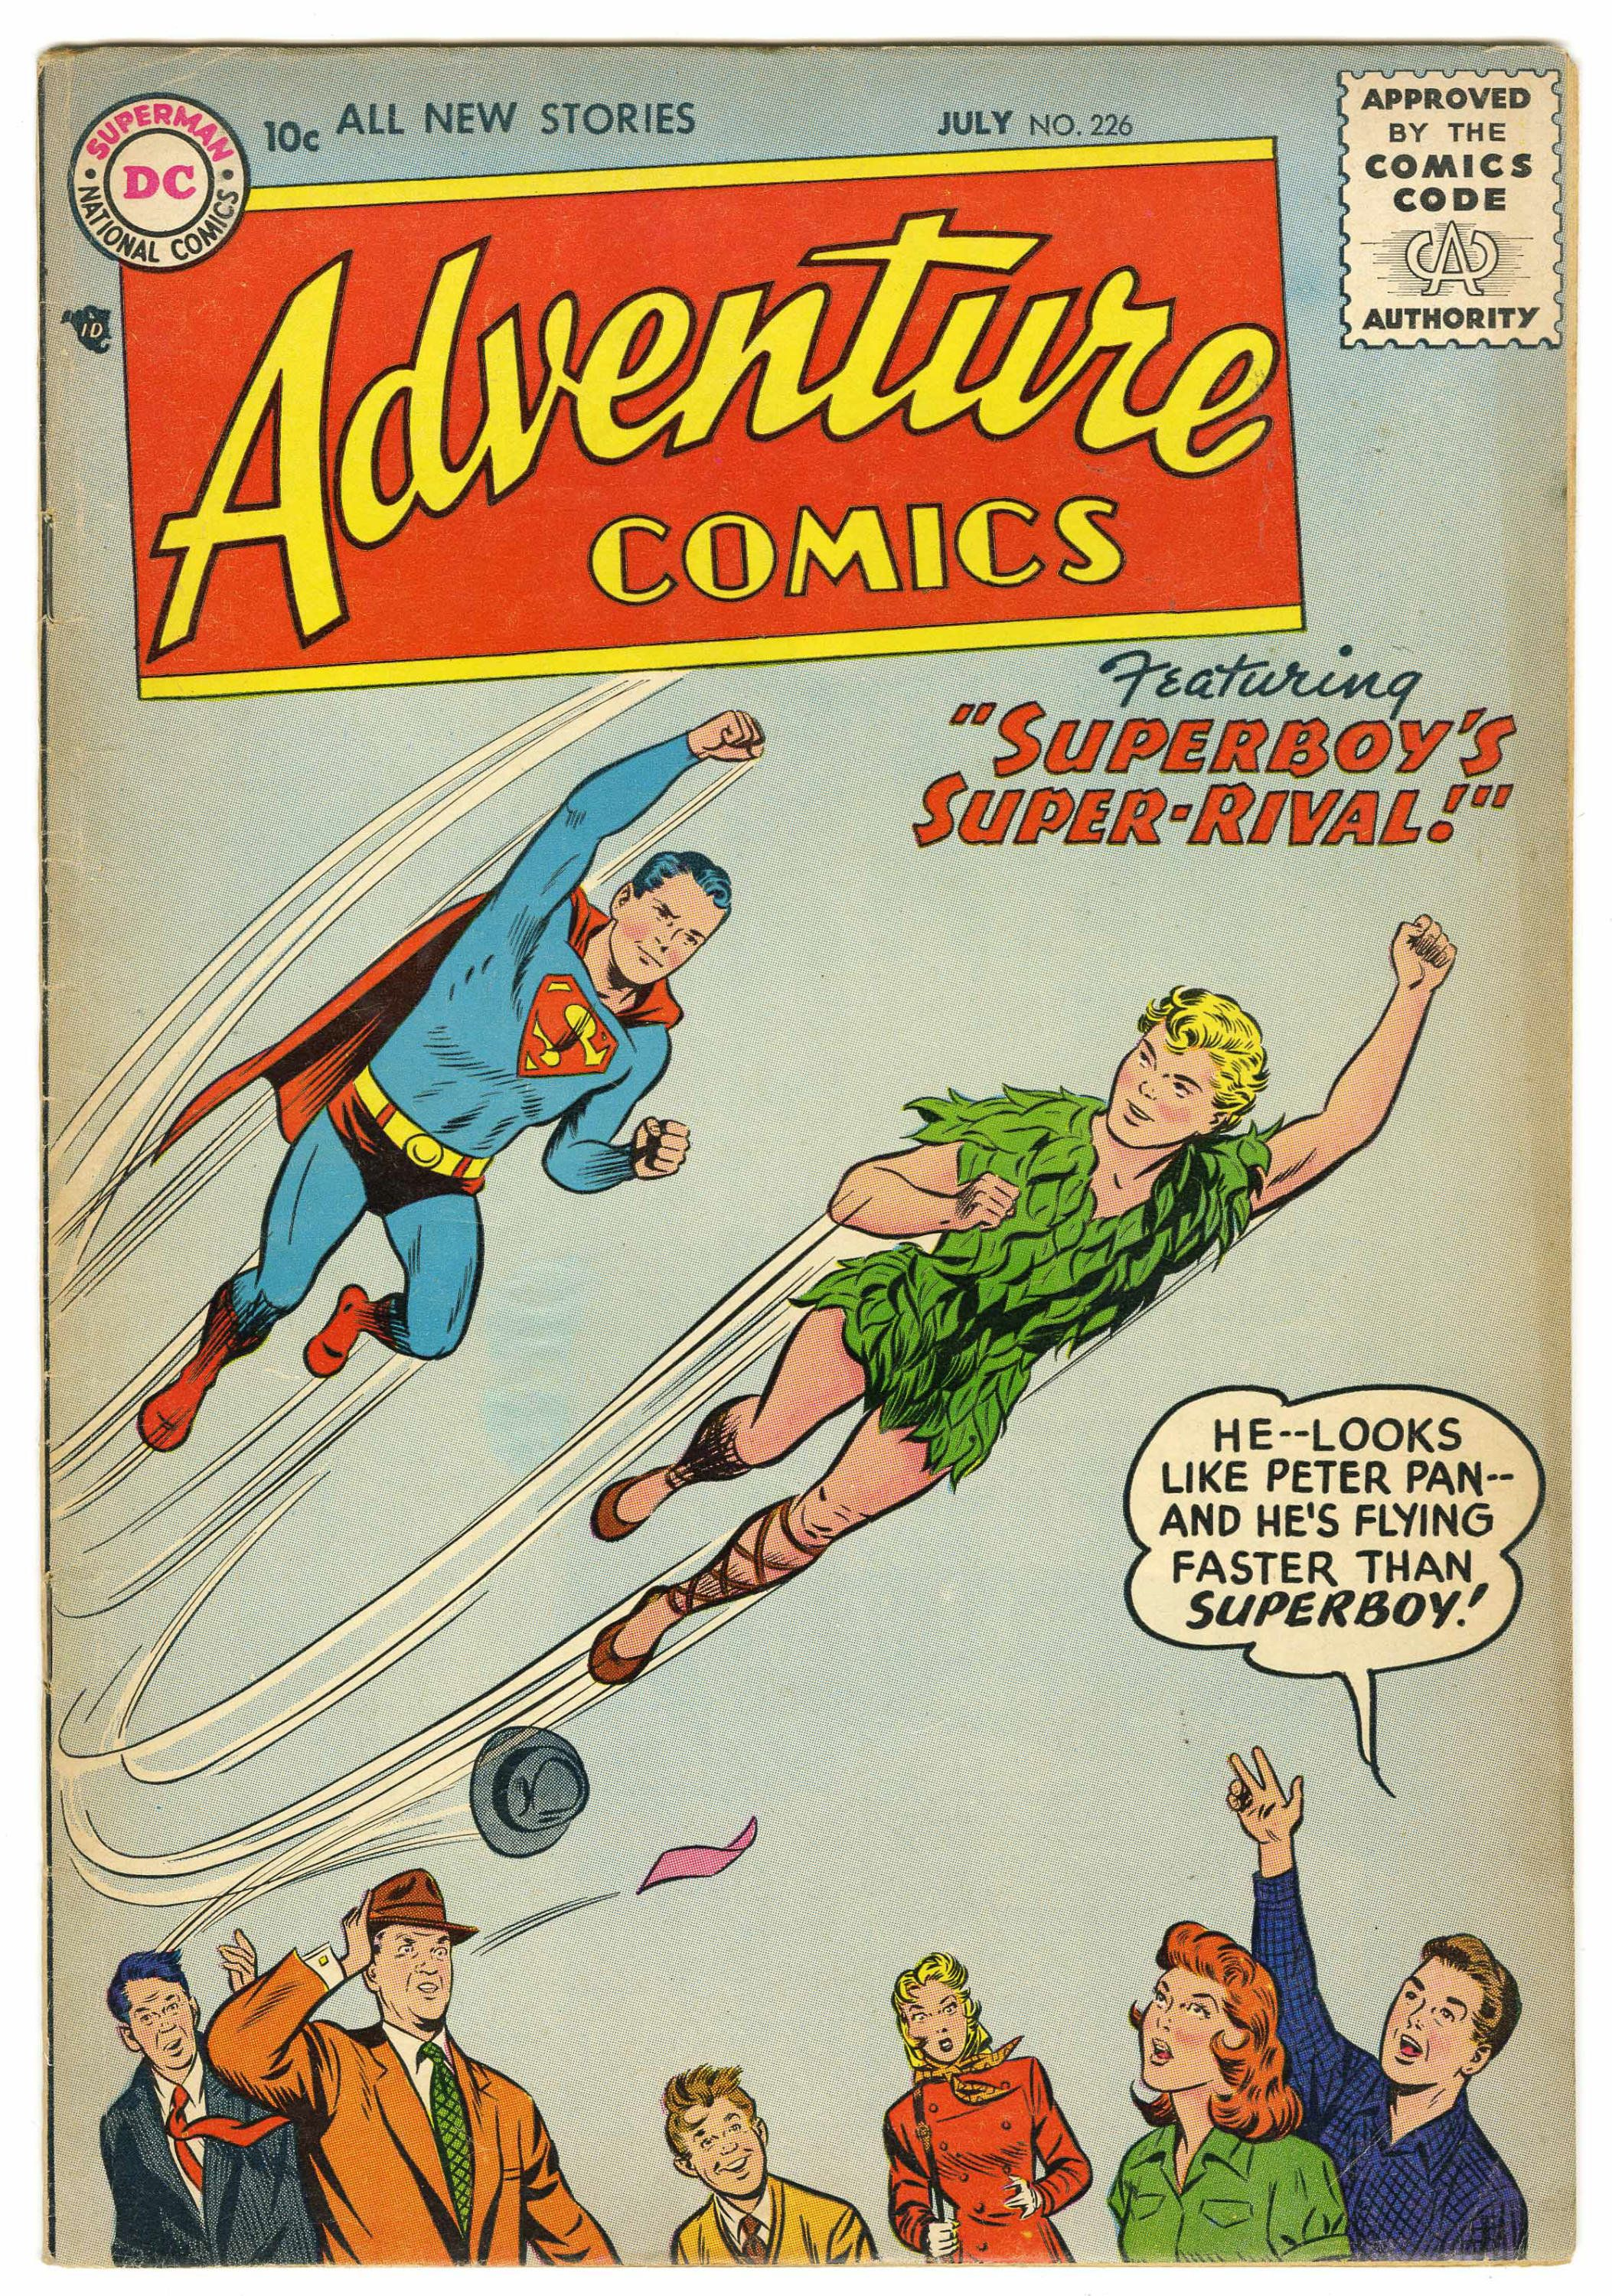 Adventure Comics #226 1956 - Before our comic book heroes\' values ...